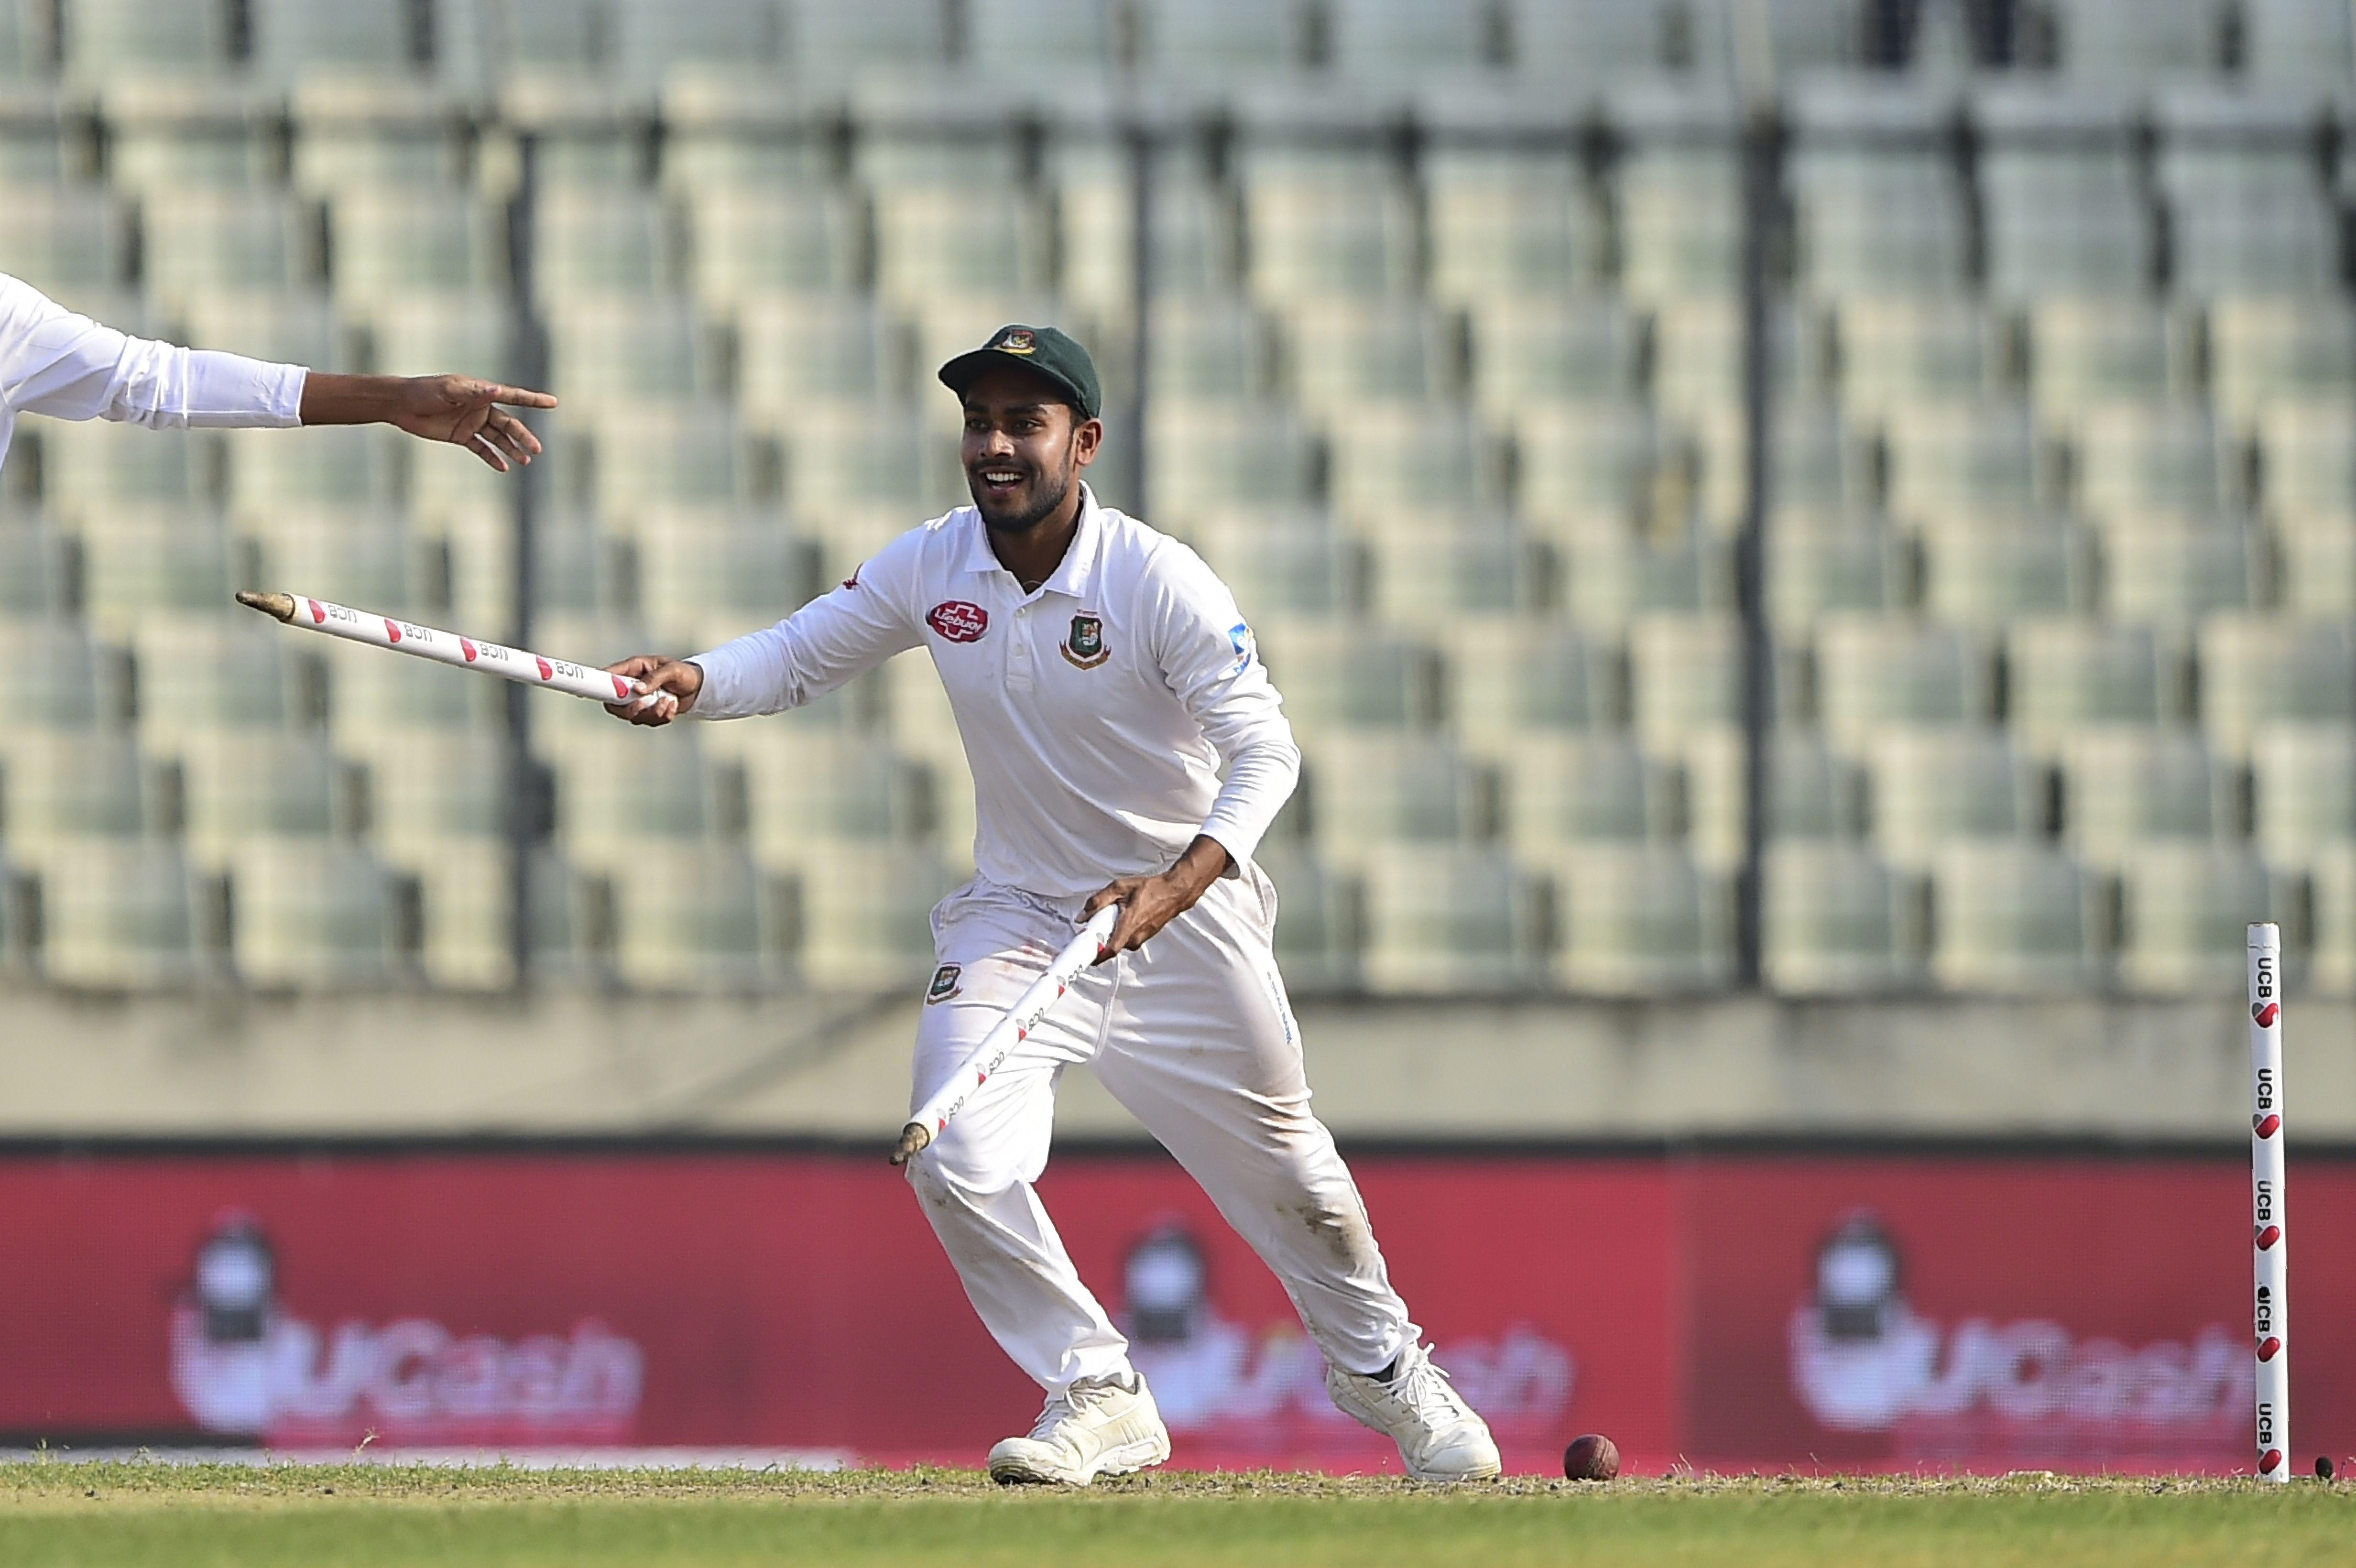 Bangladesh romped to an emphatic victory in the Test series